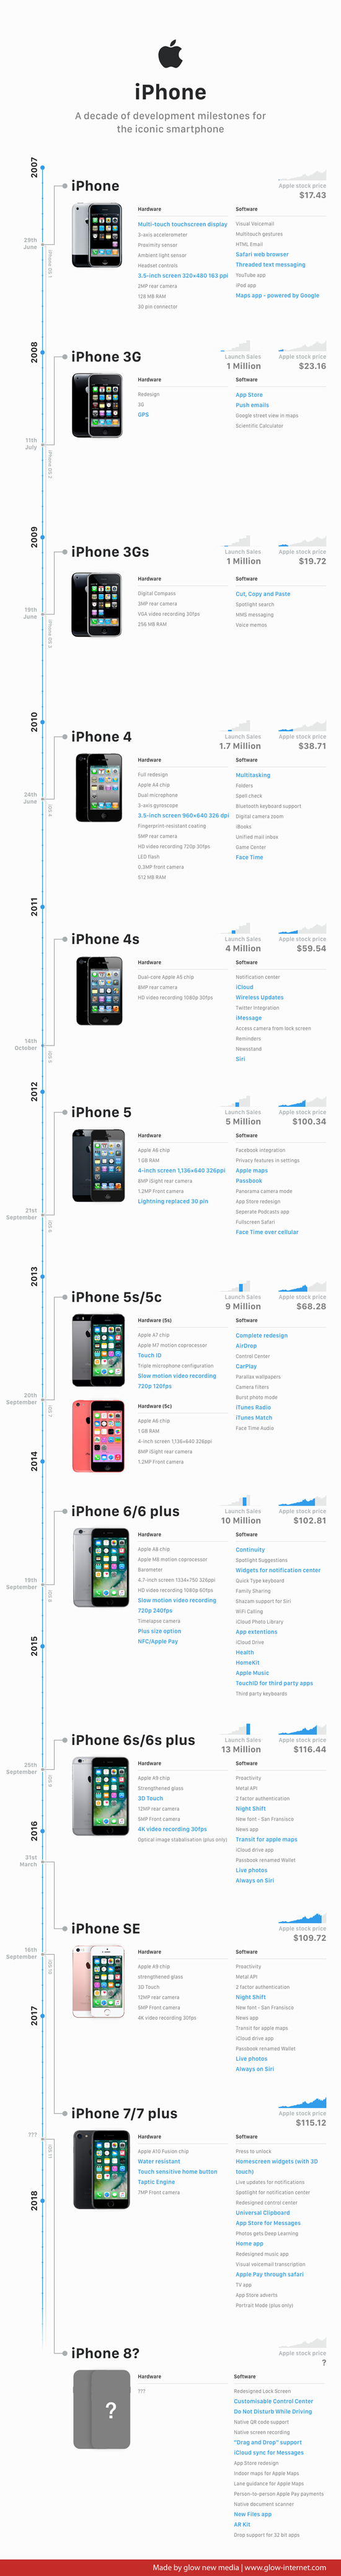 iPhone - A decade of development milestones for the iconic smartphone